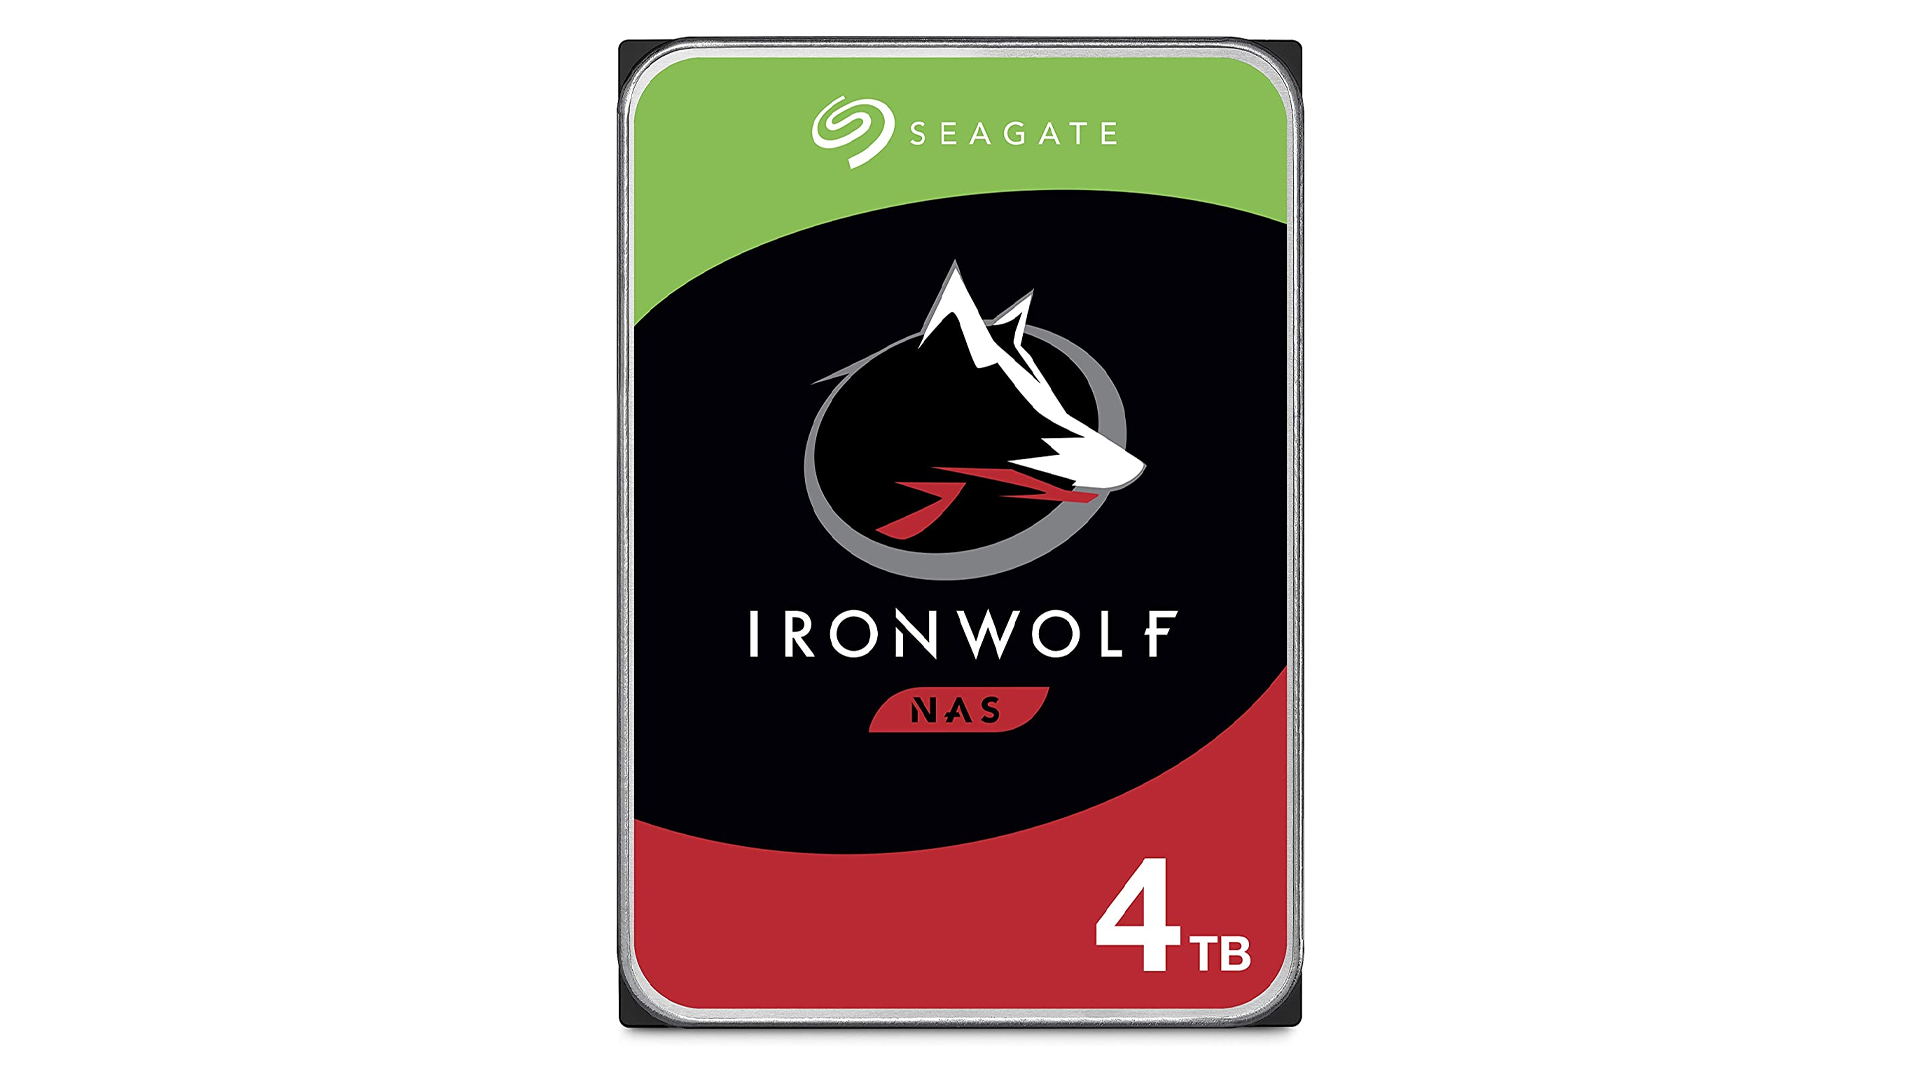 The Seagate IronWolf NAS hard drive.